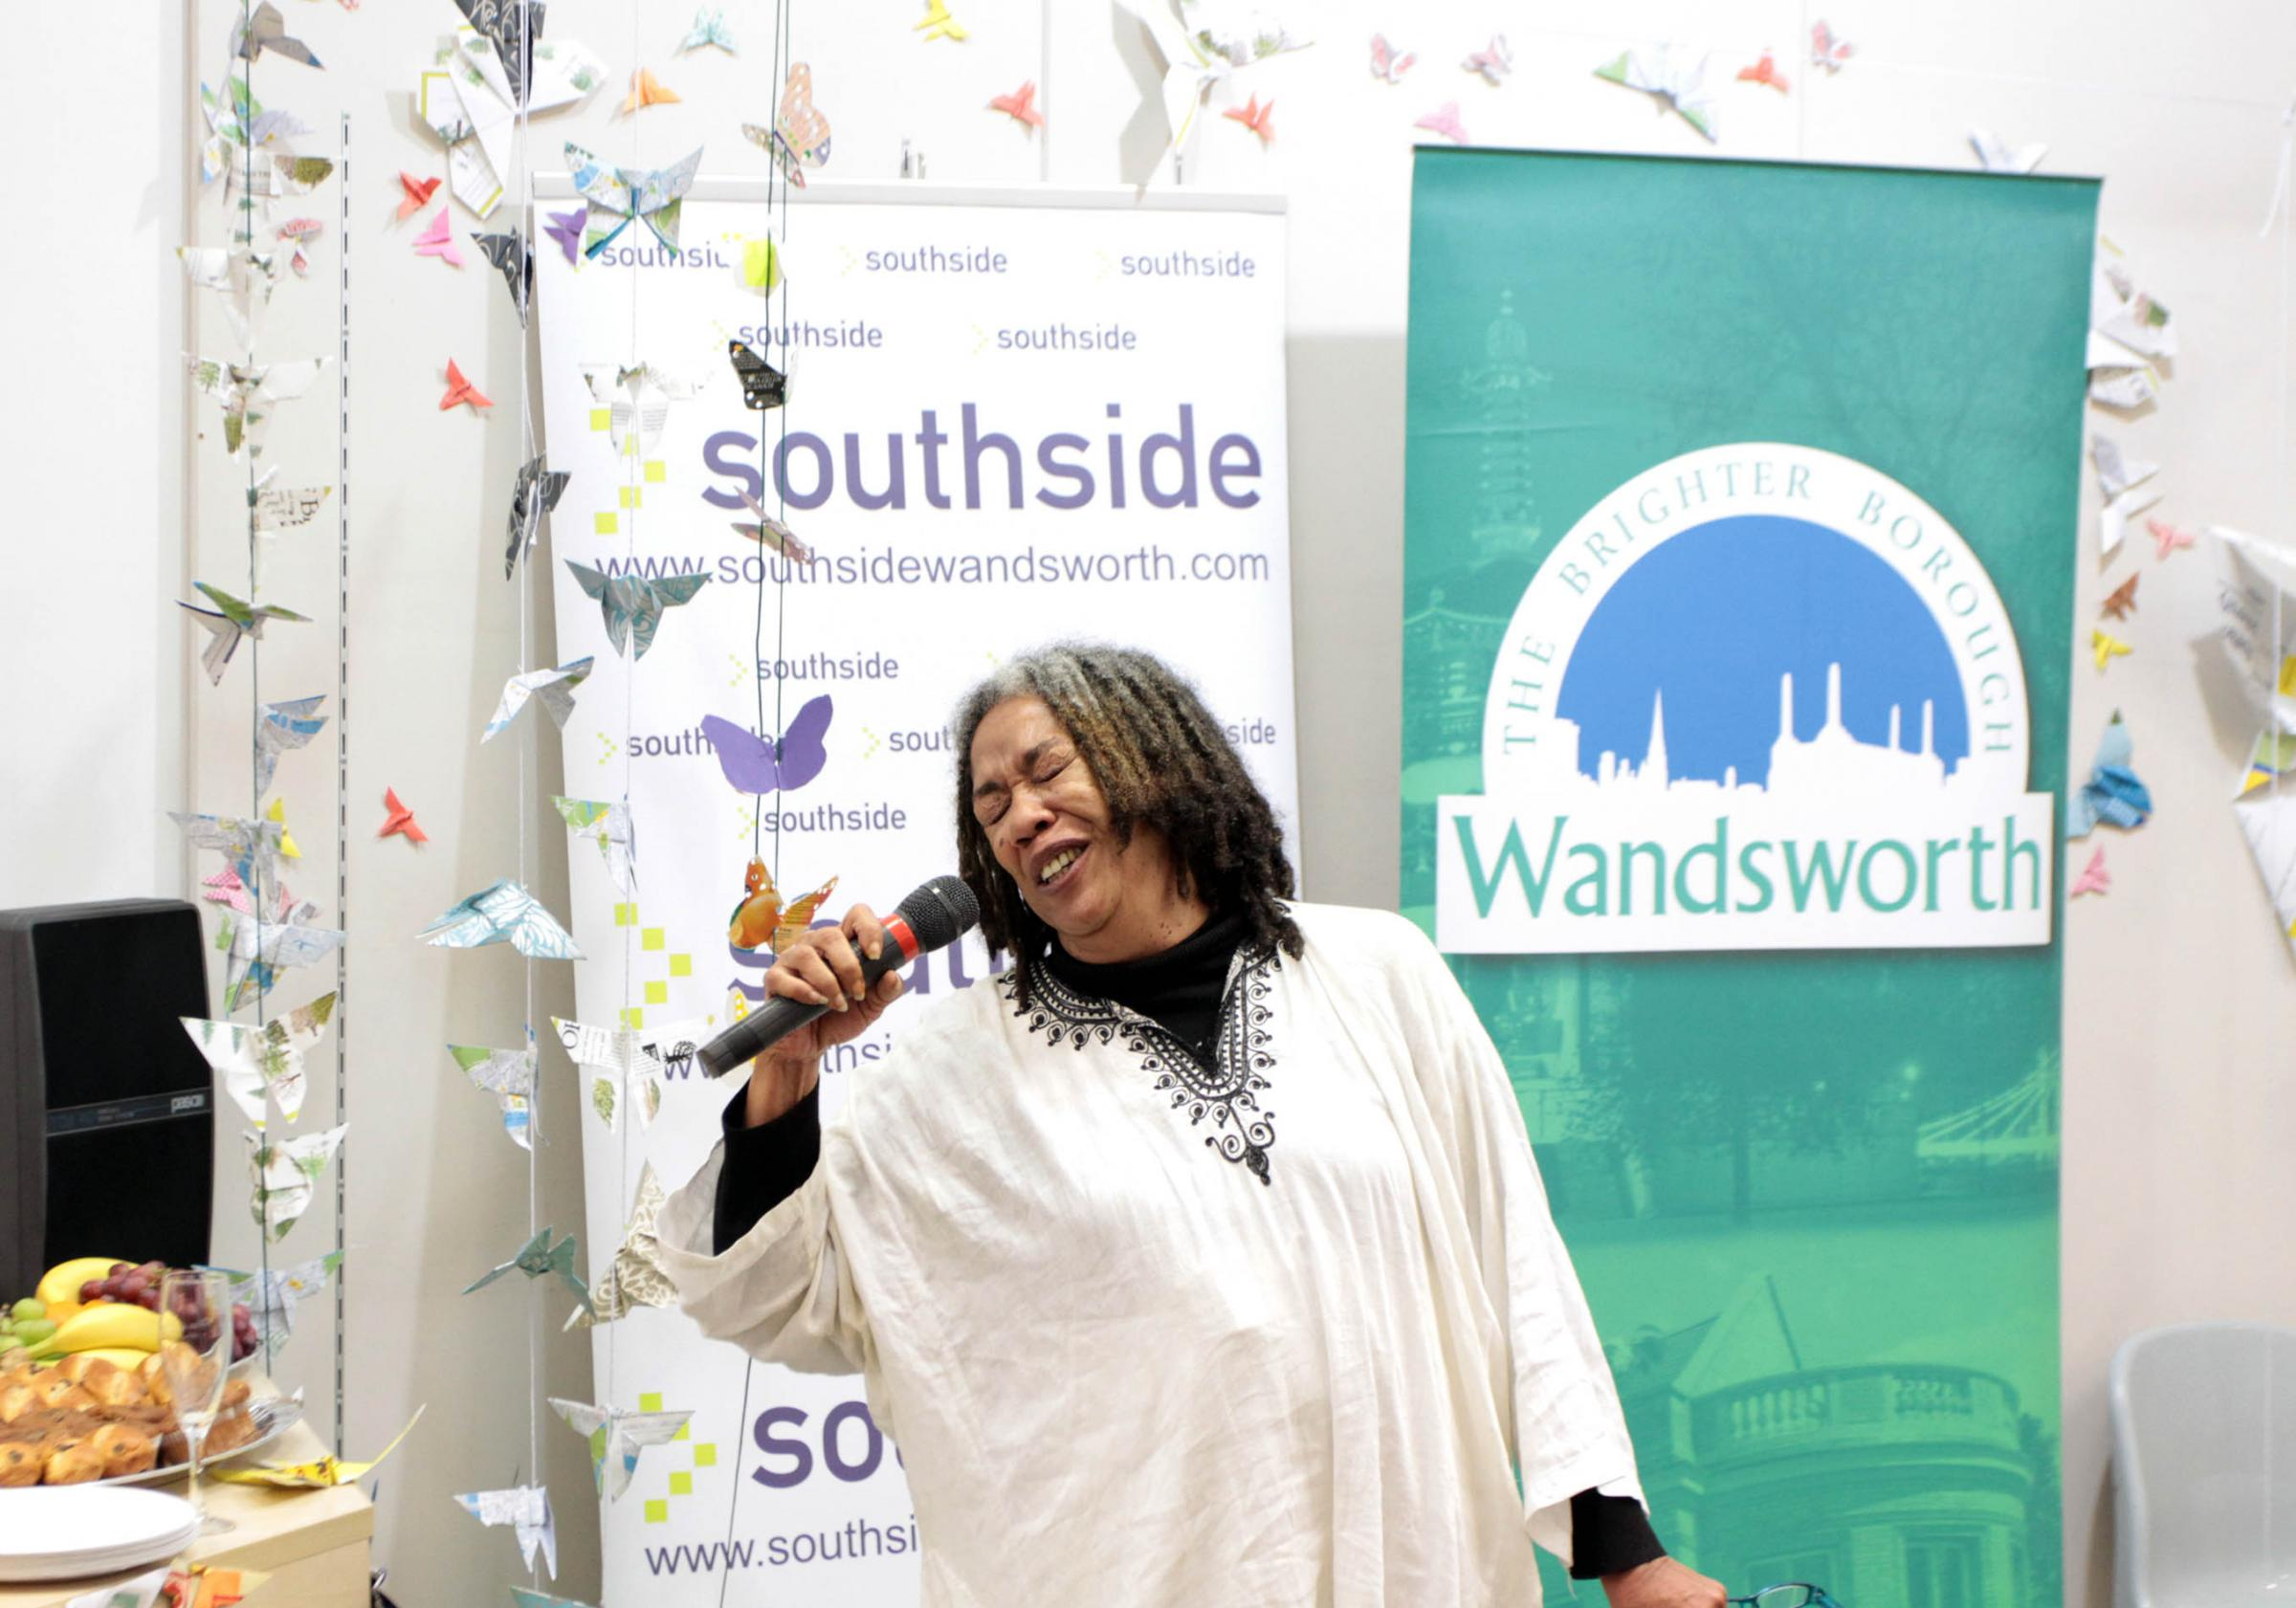 Poet Jean 'Binta' Breeze reading 'Meandering through Wandsworth' at a previous fringe festival